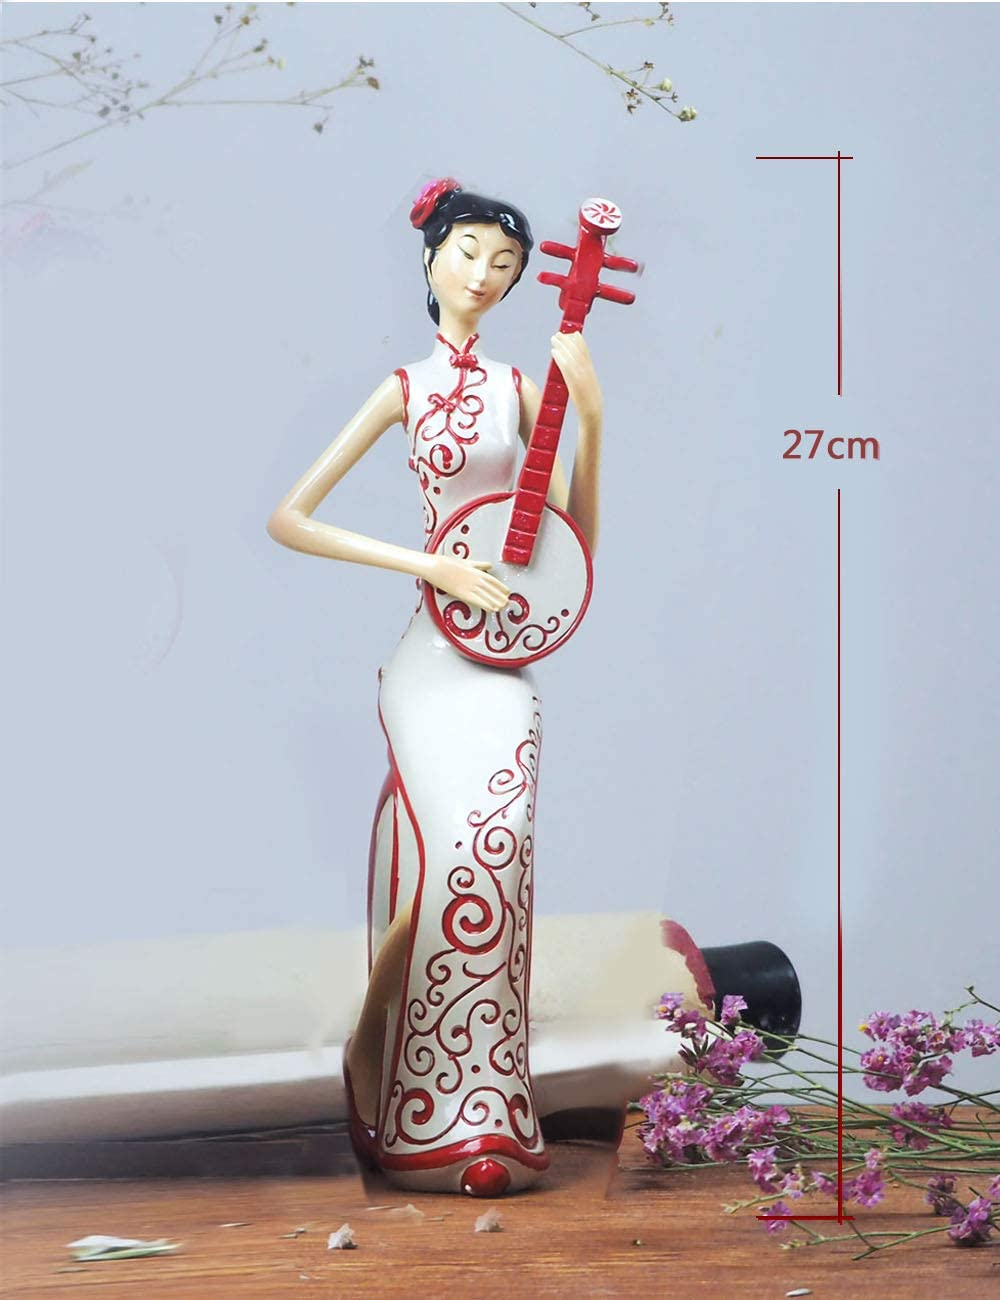 HauCoze Statue Chinese Lady Woman Lady Sculpture,Tabletop Figurine,Home Decoration,Gifts for Kids Present,Hand-Painted Resin Decor 23.5cmH Red